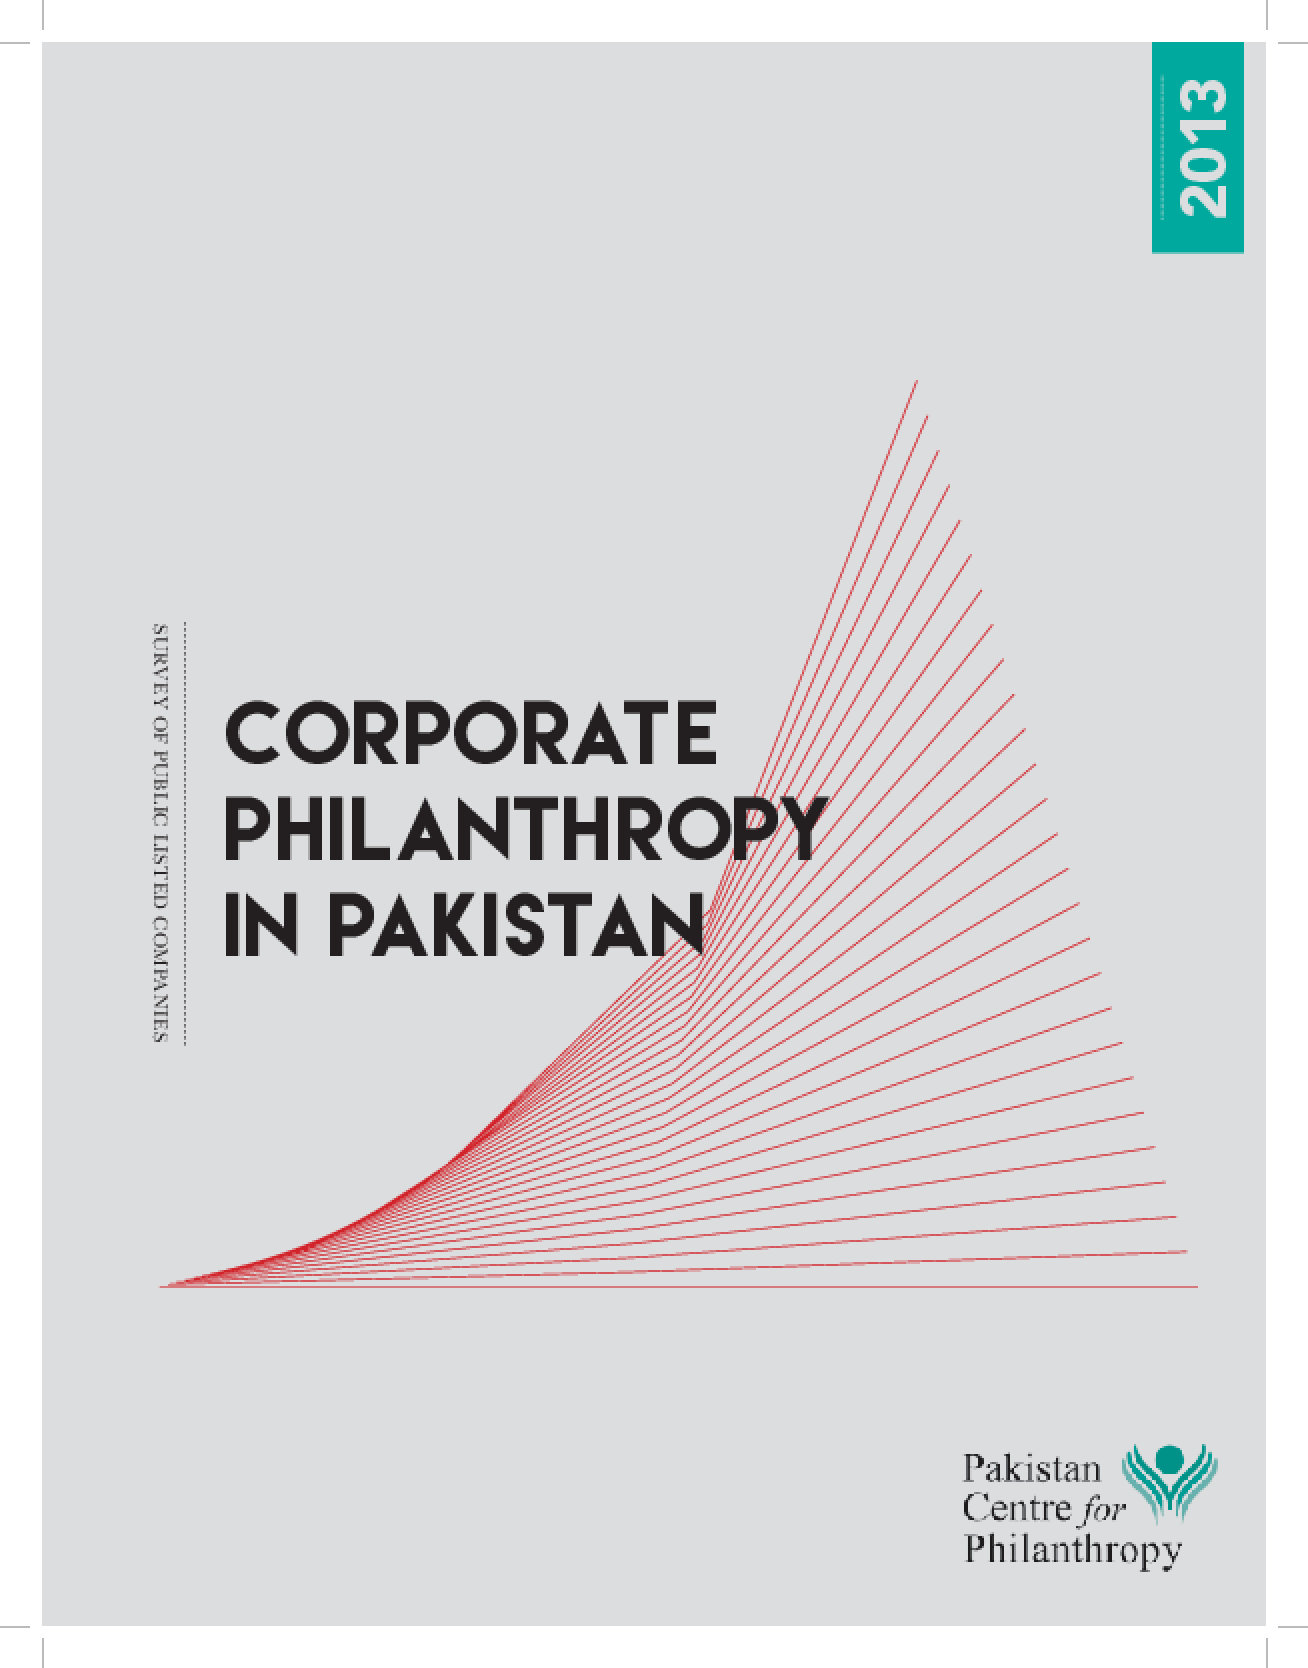 Corporate Philanthropy in Pakistan: Survey of Public Listed Companies (2013)